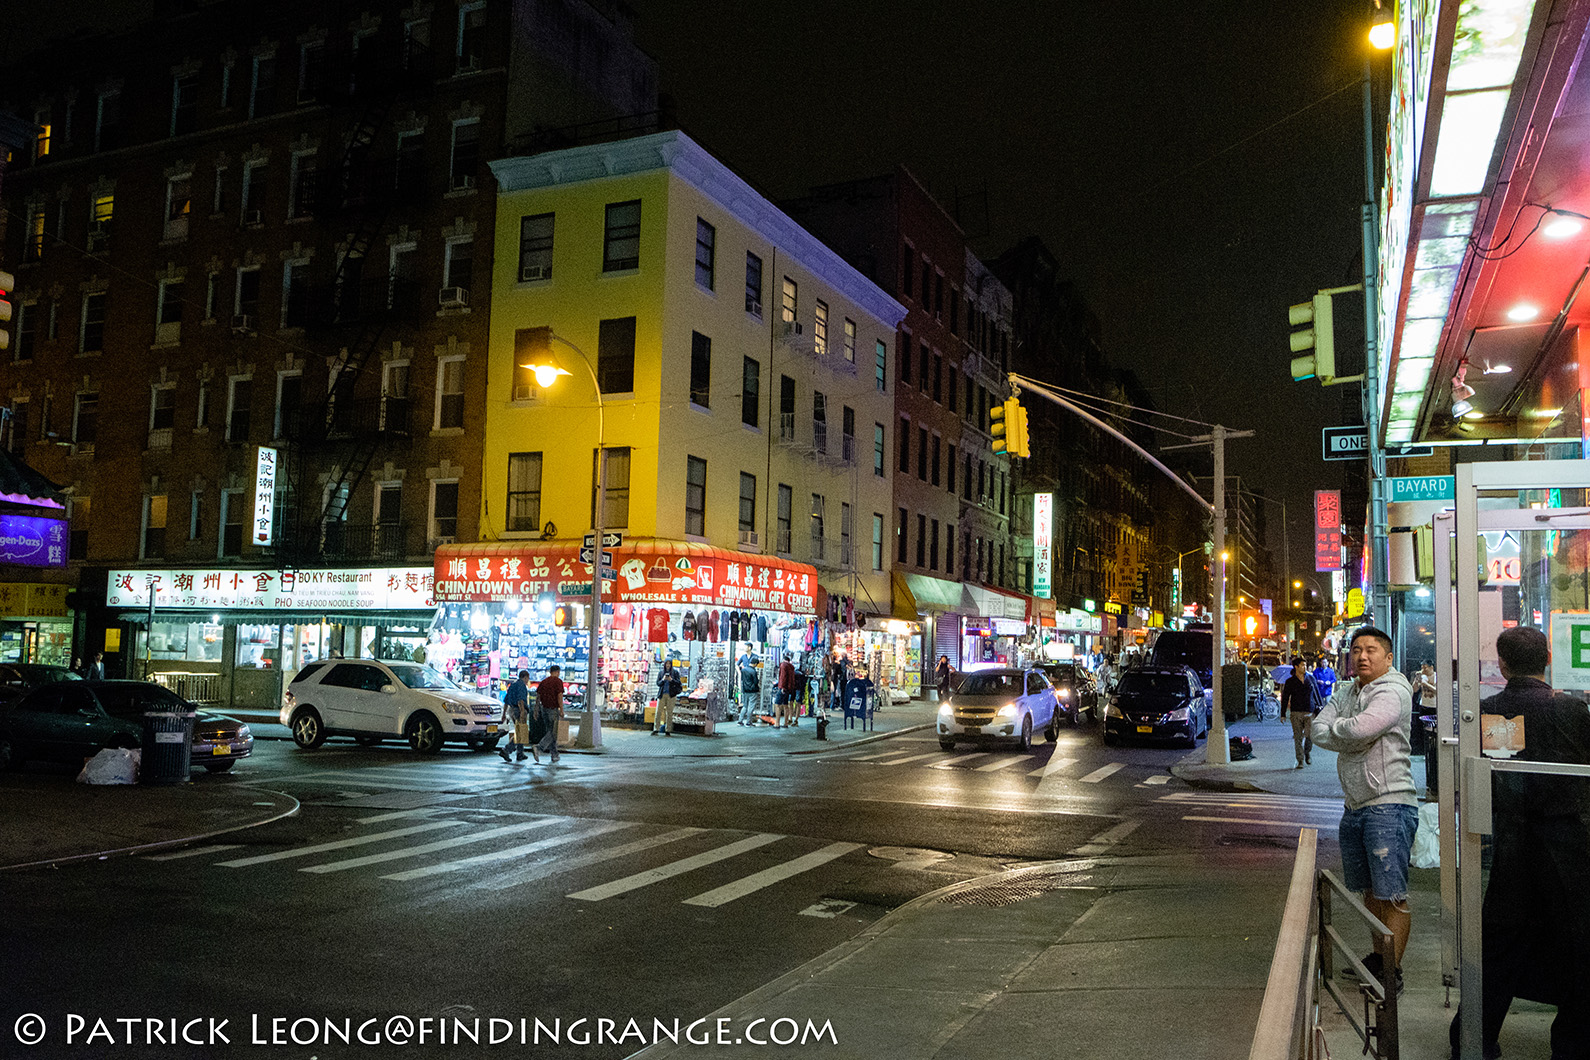 fuji-x-t2-xf-18-55mm-f2-8-4-r-lm-ois-lens-chinatown-new-york-city-high-iso